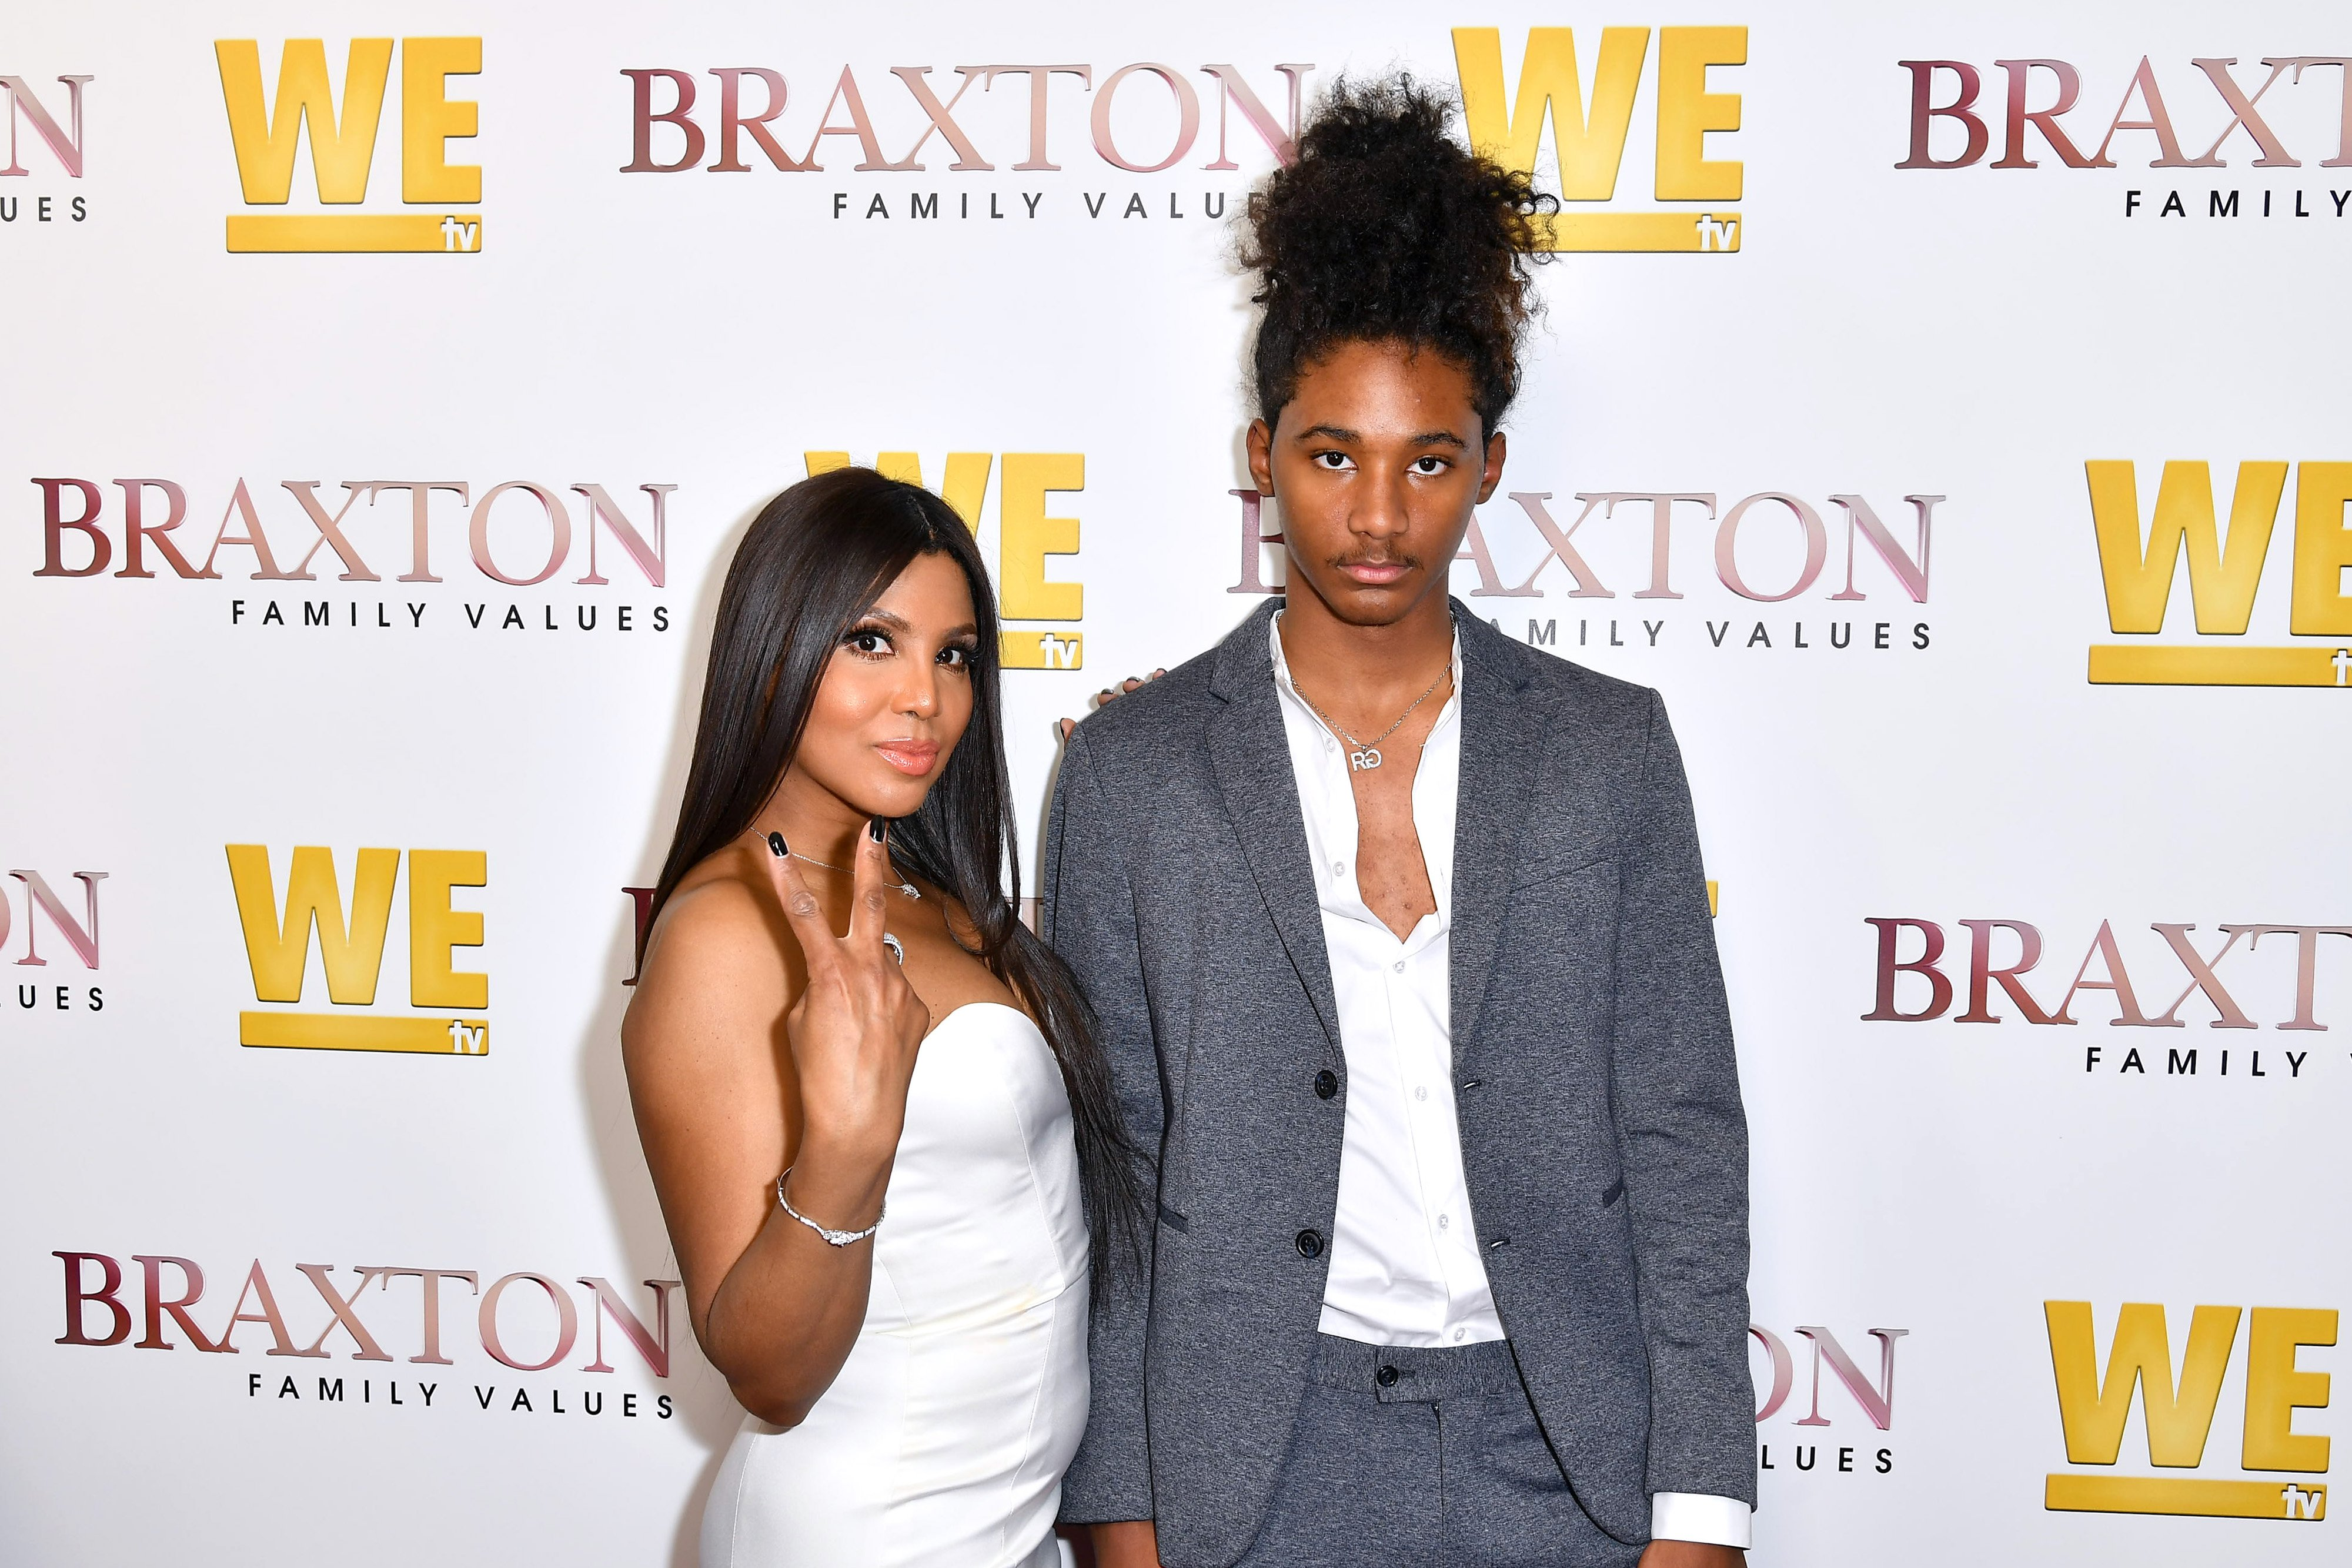 """Toni Braxton and her son Diezel attend WE tv's """"Braxton Family Values"""" premiere on April 02, 2019 in California. 